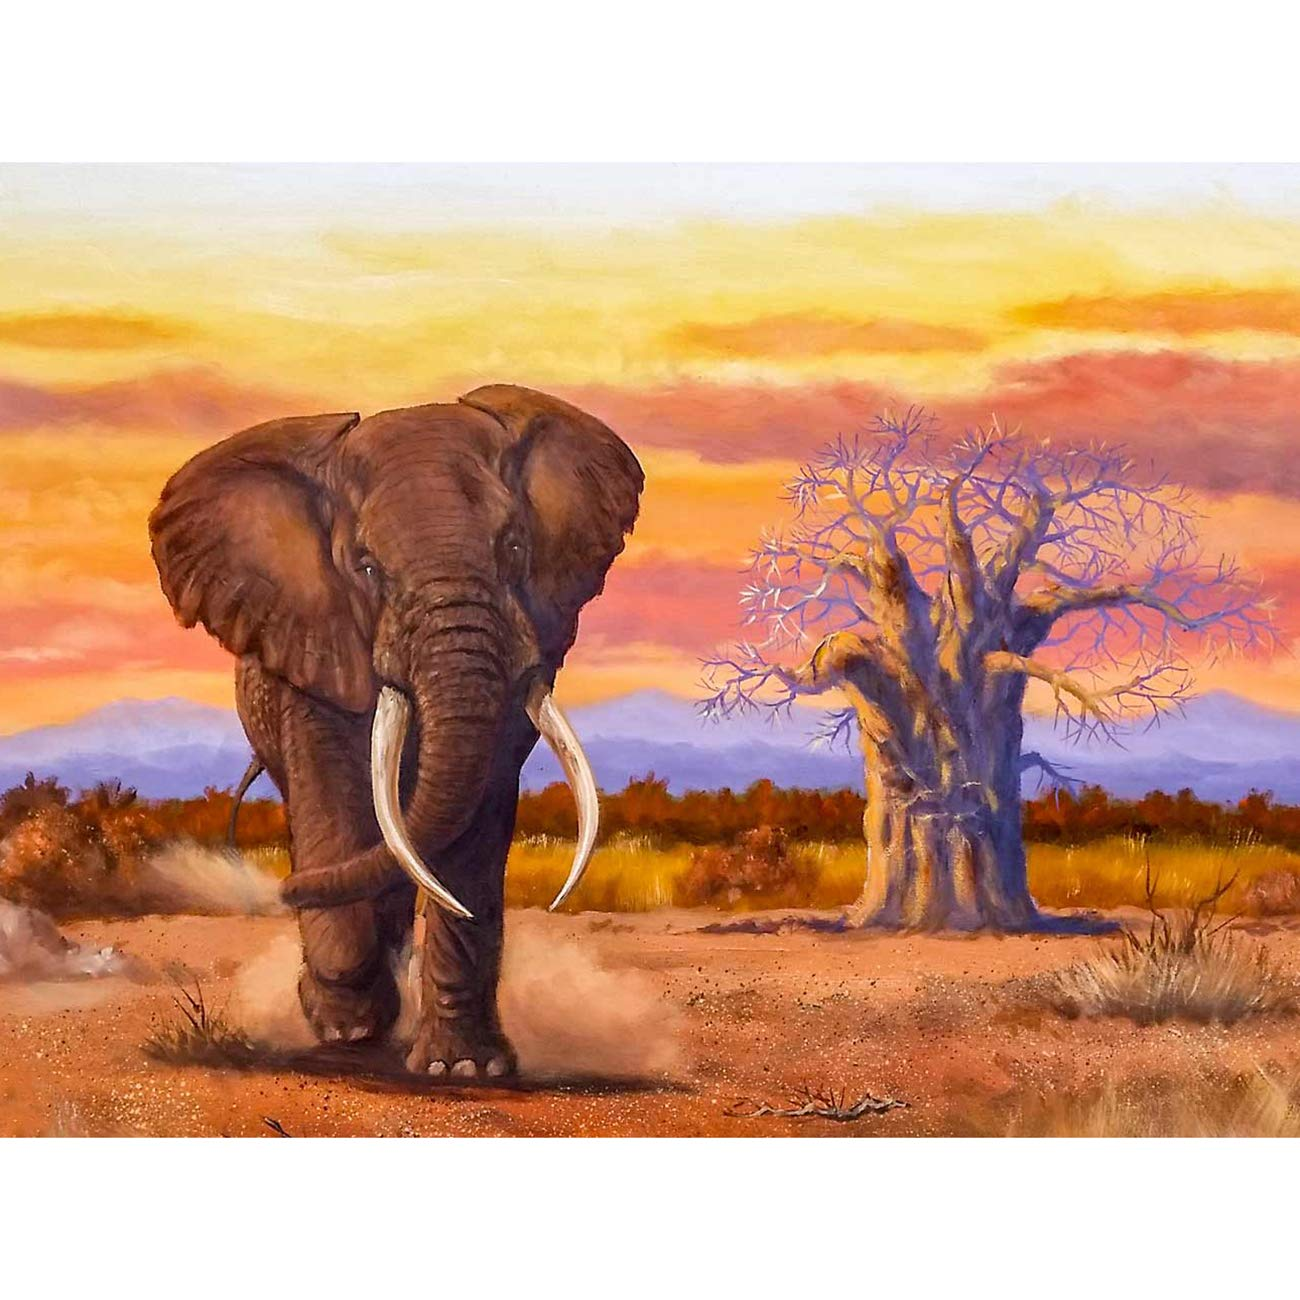 "SKRYUIE 5D Diamond Painting Elephant Full Drill Paint with Diamond Art, DIY Animal Painting by Number Kits Cross Stitch Embroidery Rhinestone Wall Home Decor 30x40cm (12""x16"")"